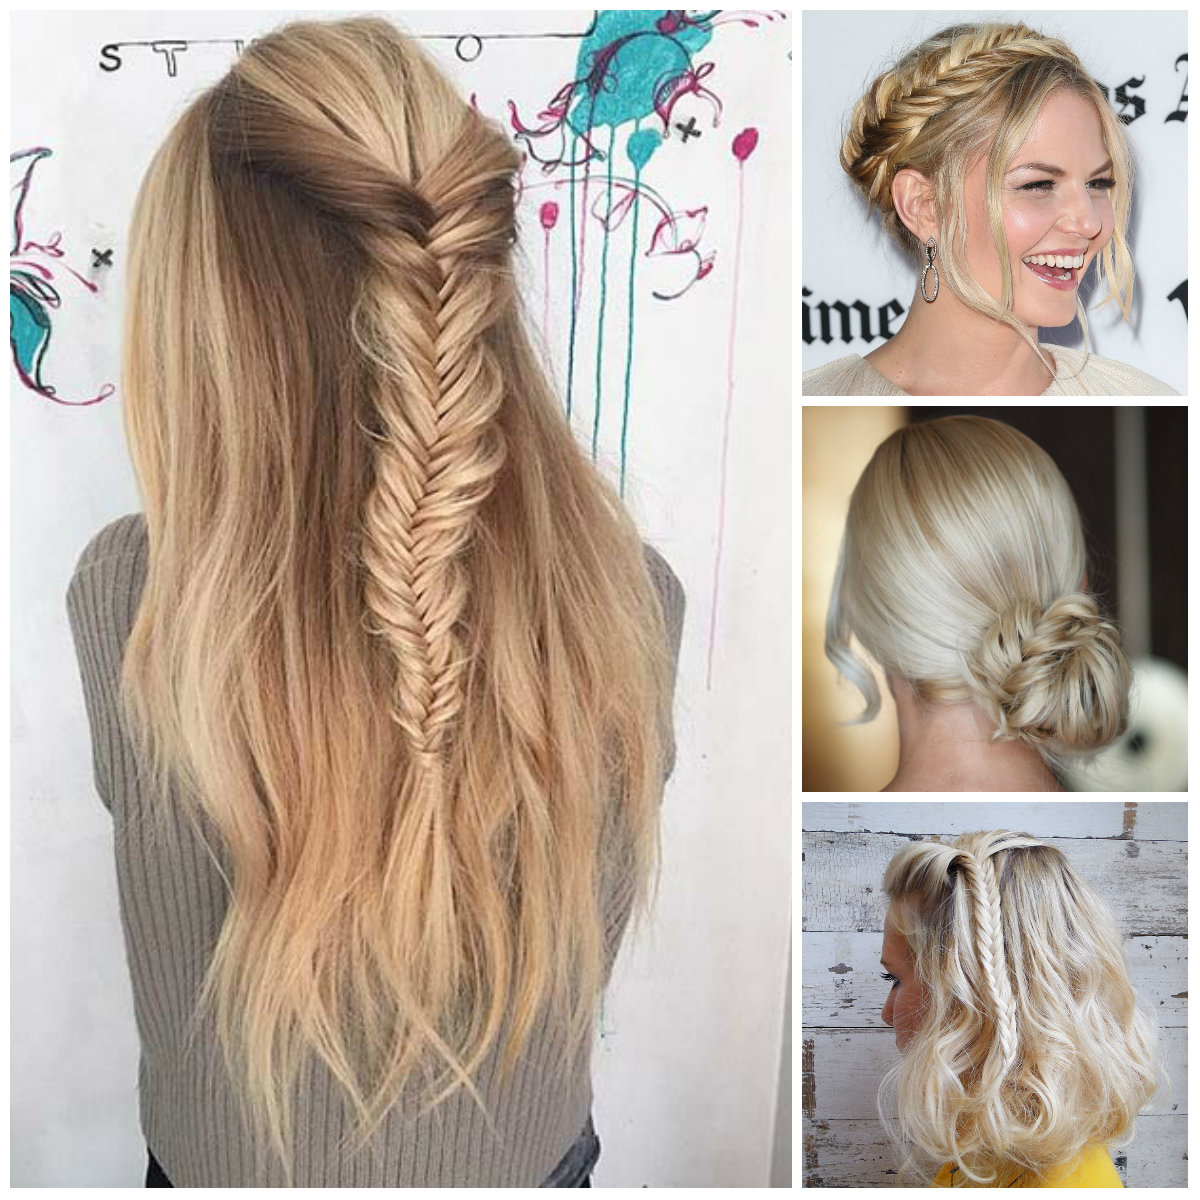 fishtail braid hairstyles 2016